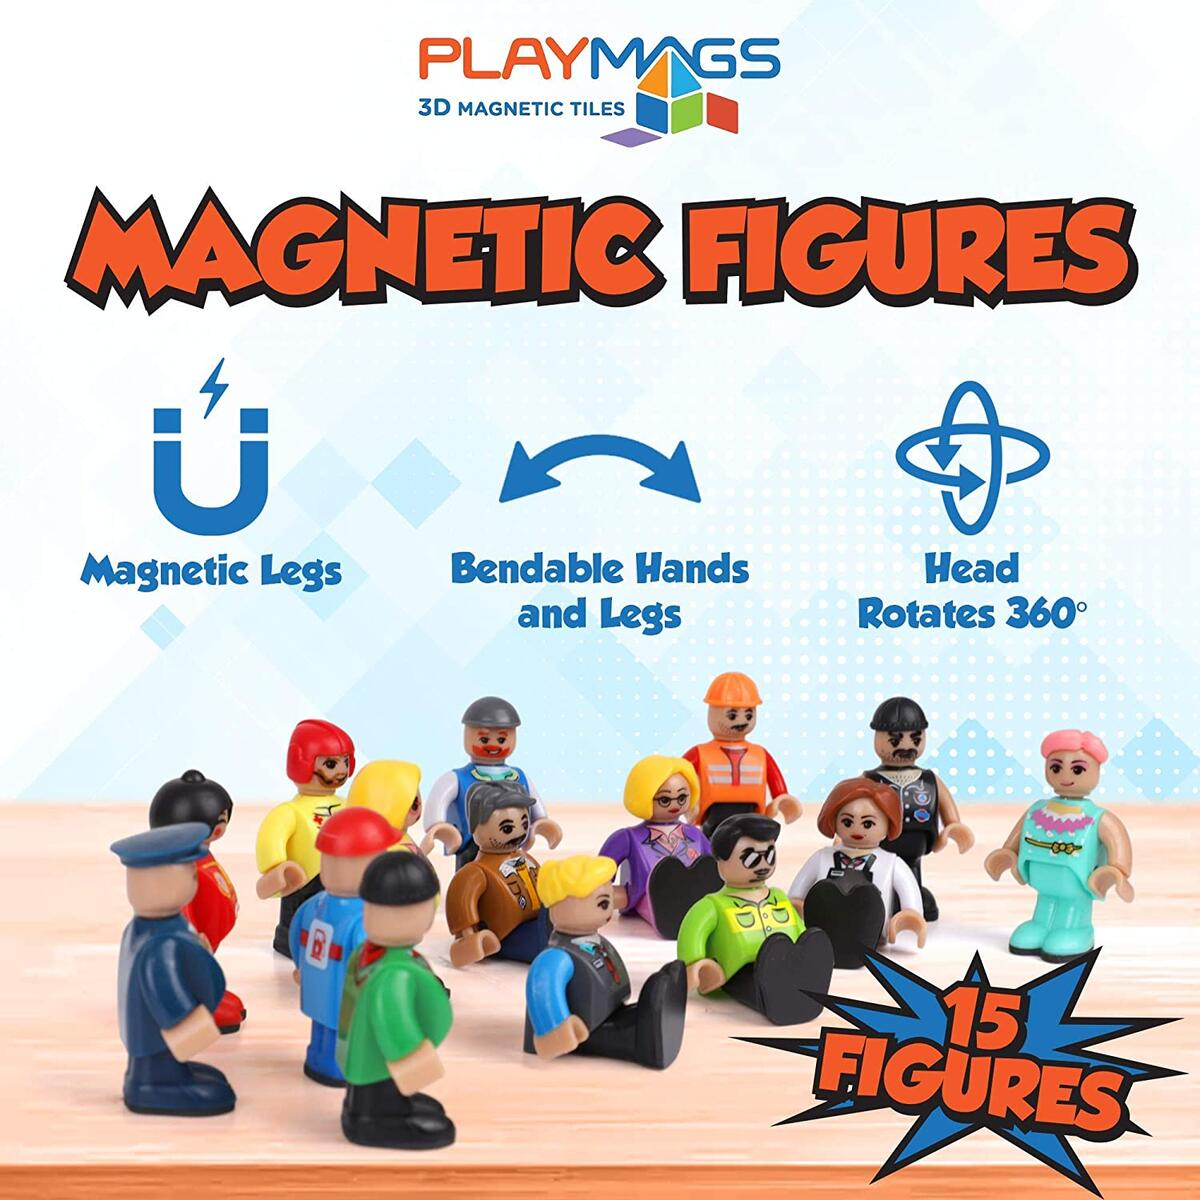 Playmags Magnetic Figures-Community Figures Set of 15 Pieces - Magnetic People with Extra-Strong Magnets, STEM Learning Toys Children - Magnetic Tiles Expansion Pack- Compatible w Other Brands